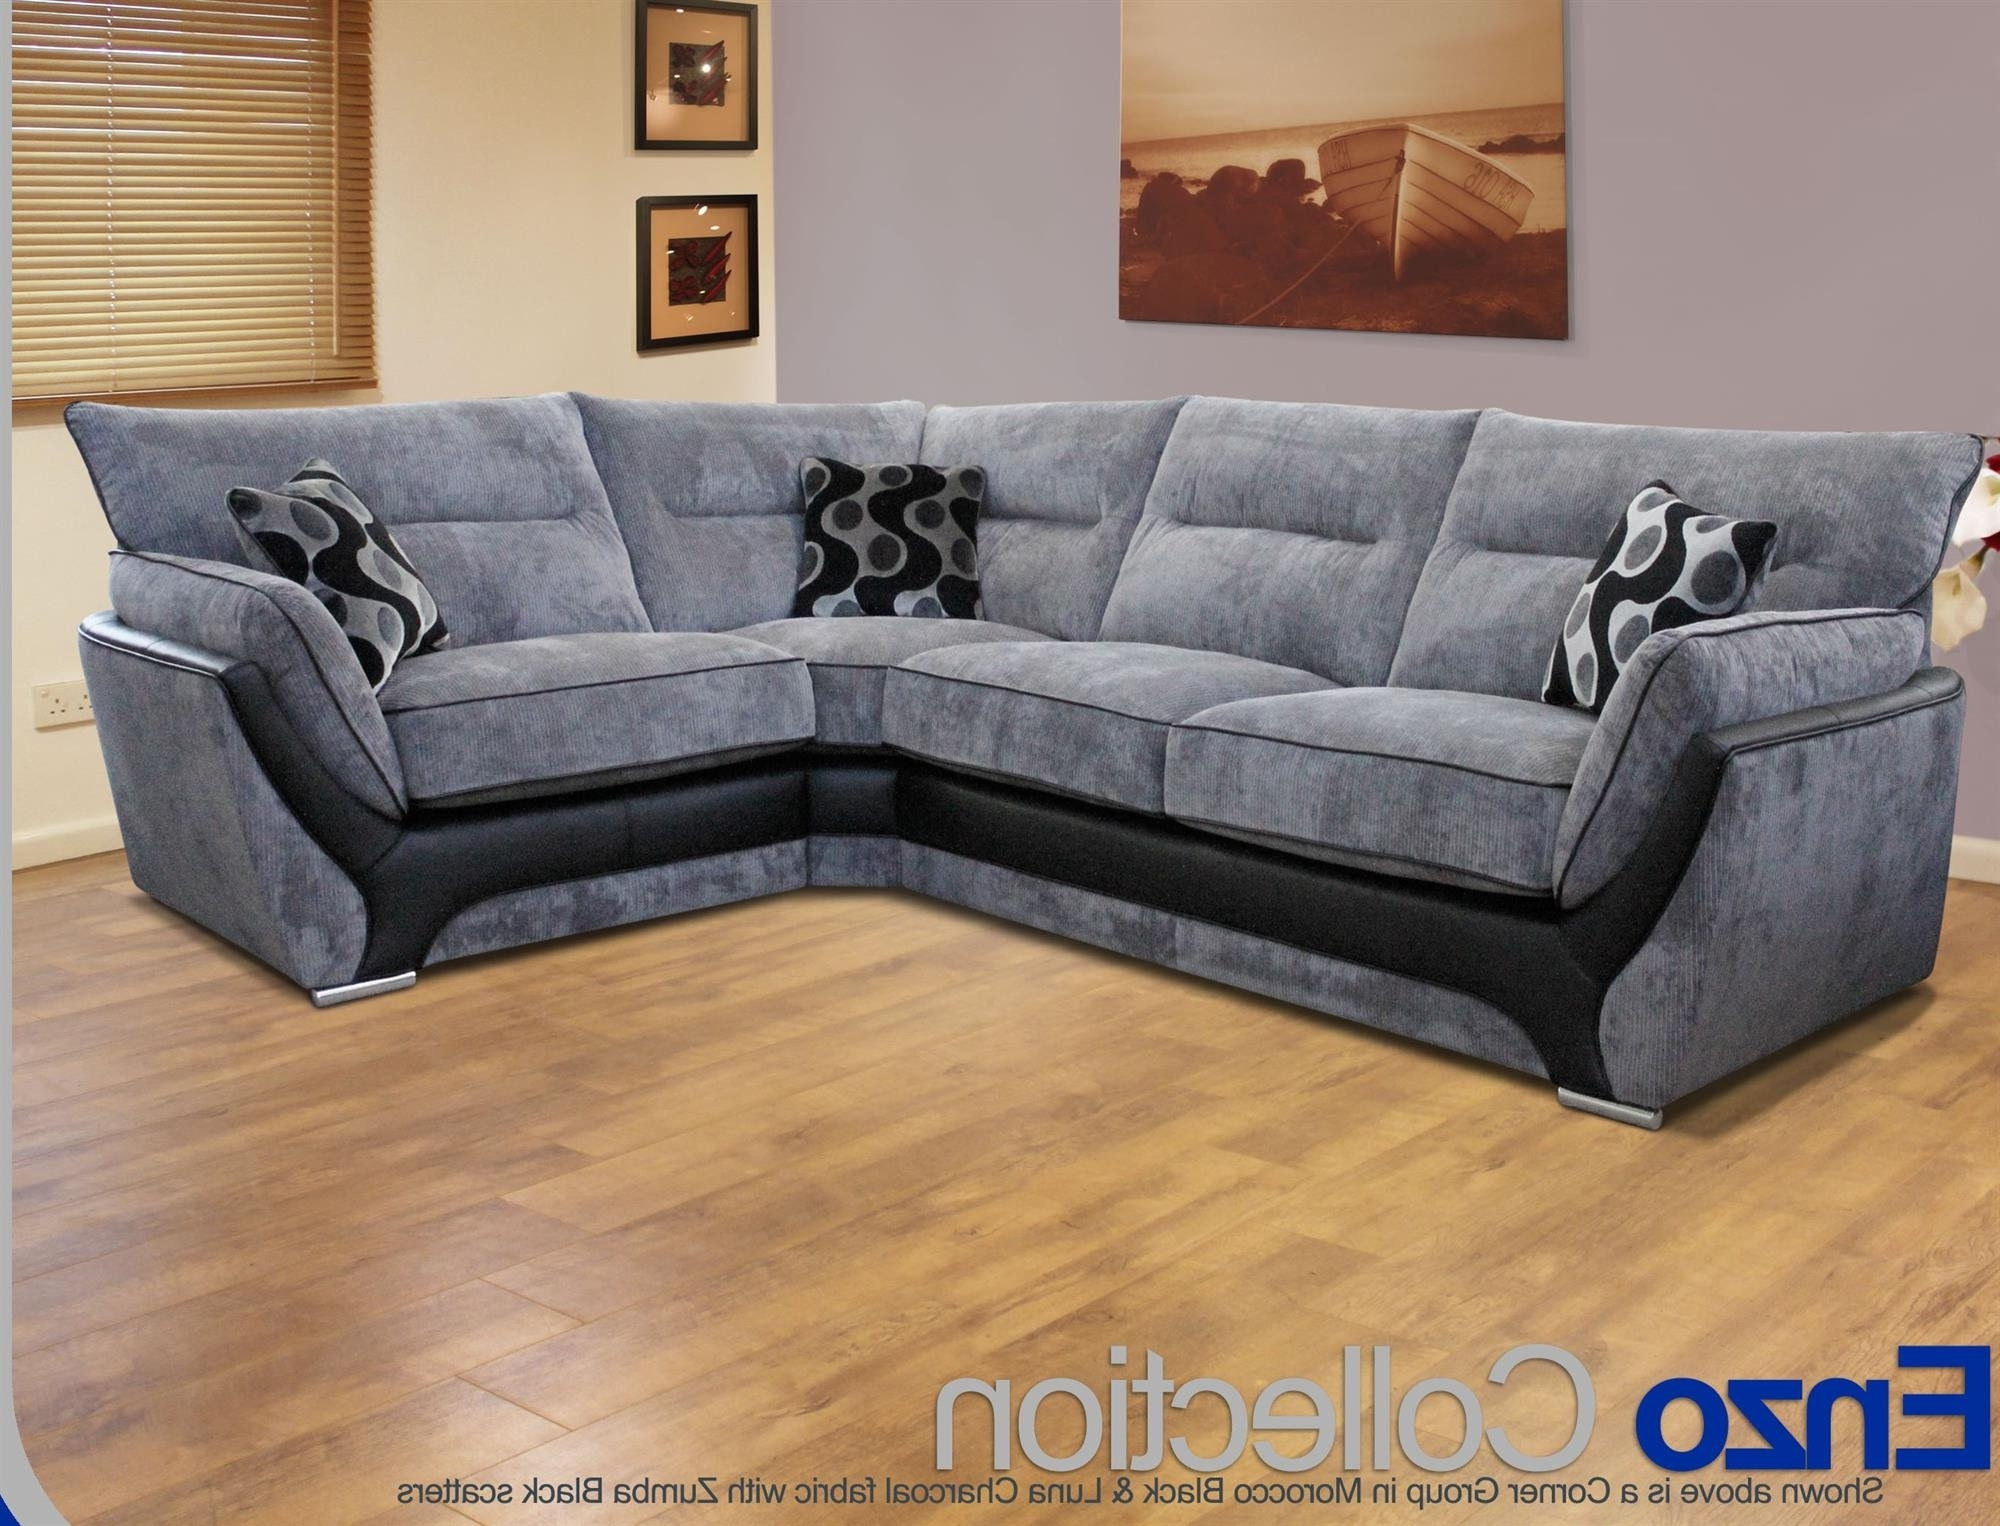 2019 Buoyant Enzo Corner Sofas Chairs Footstools From Planet Furniture Throughout Corner Sofa Chairs (View 1 of 20)